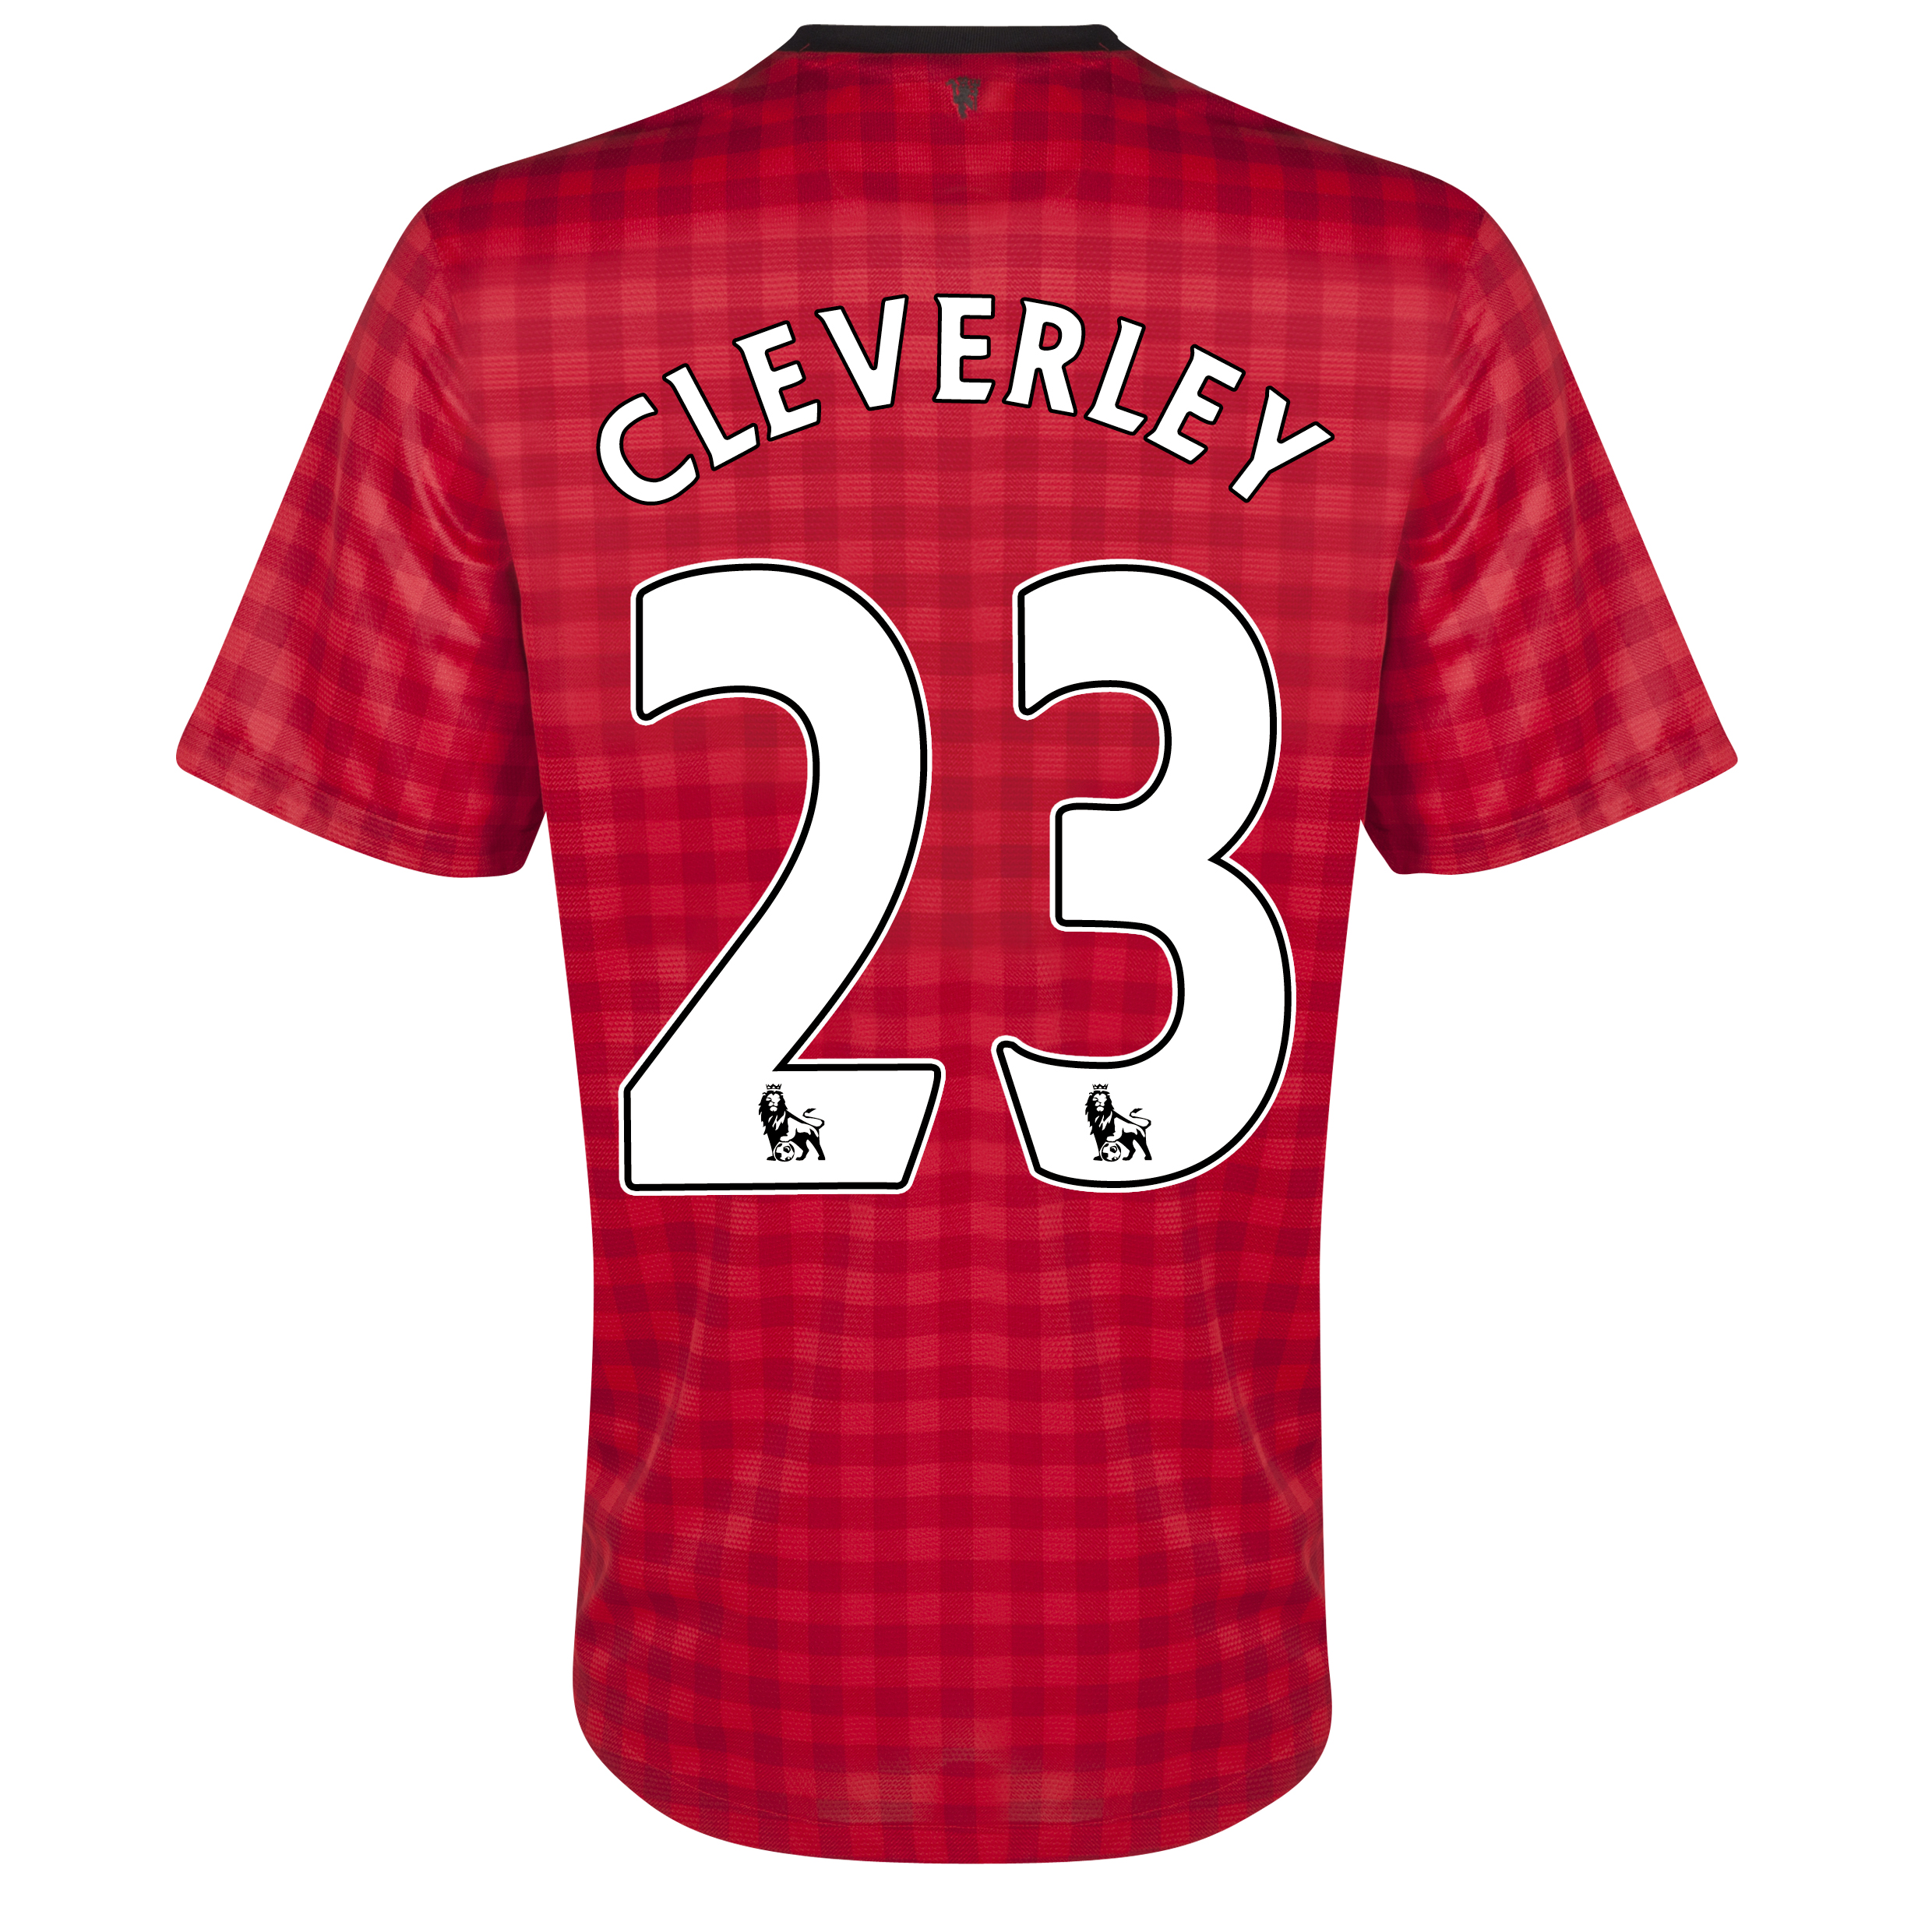 Manchester United Home Shirt 2012/13 with Cleverley 23 printing